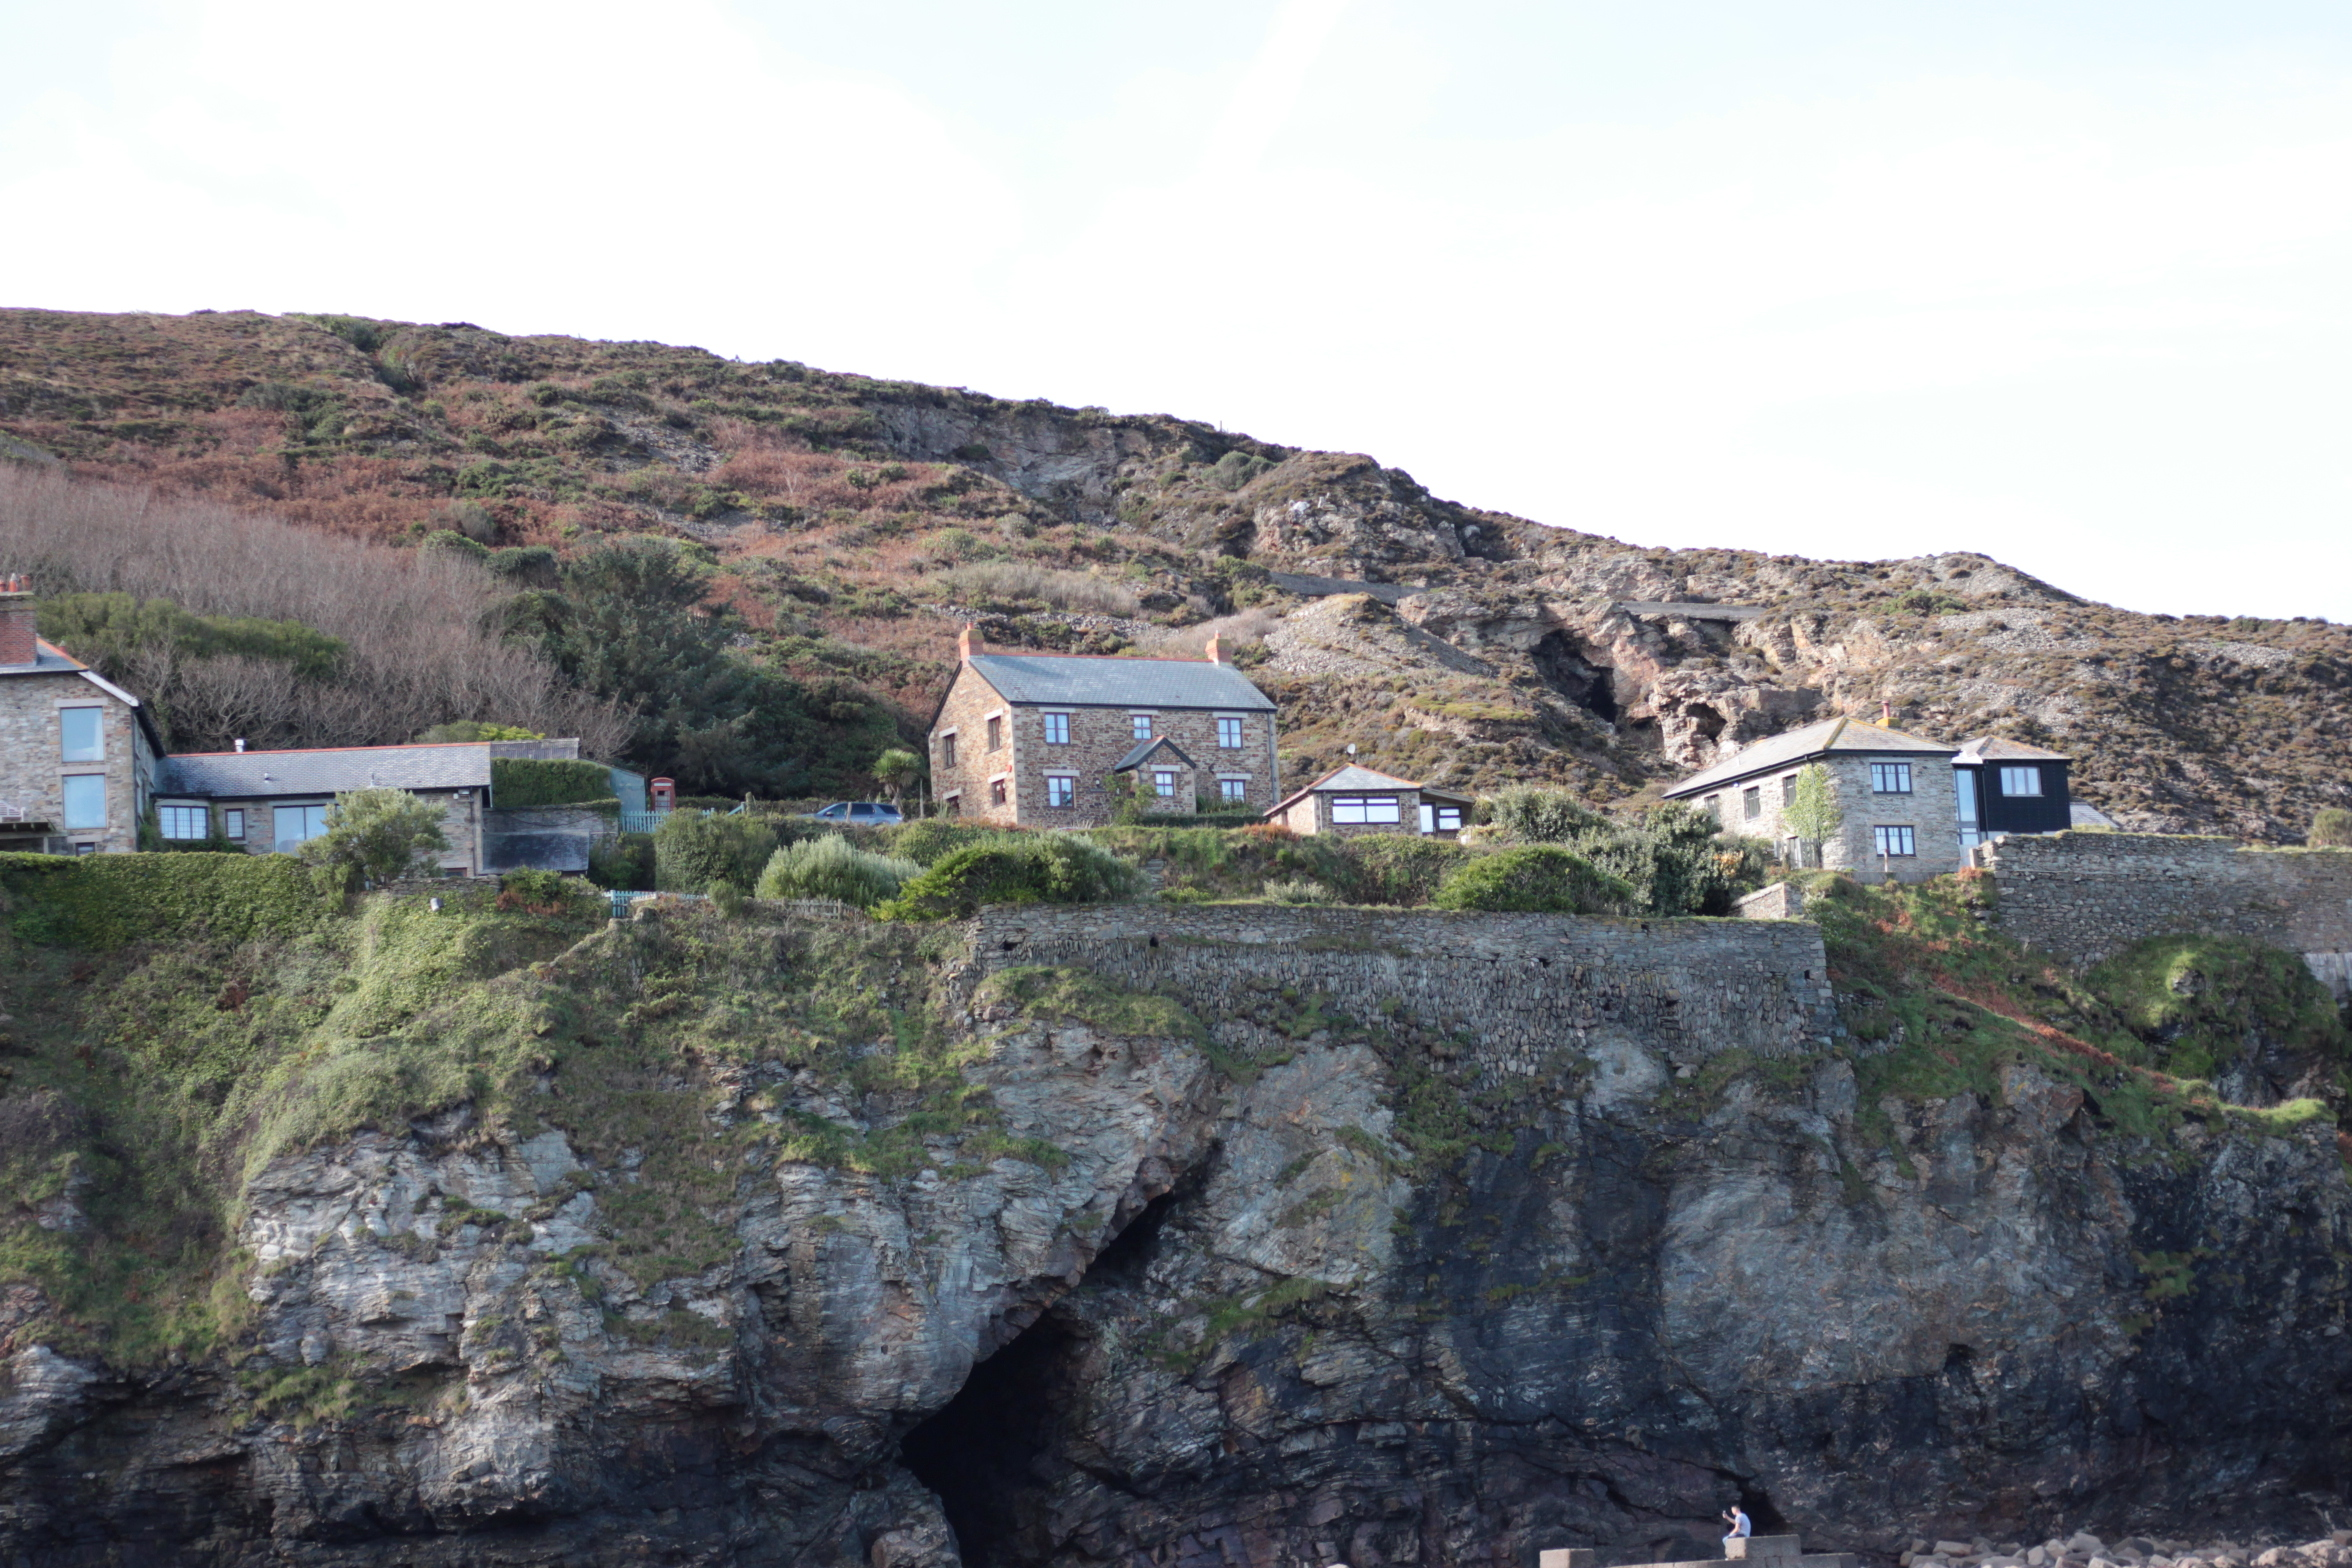 The sweetest cottages along the coast at Trevaunance Cove.